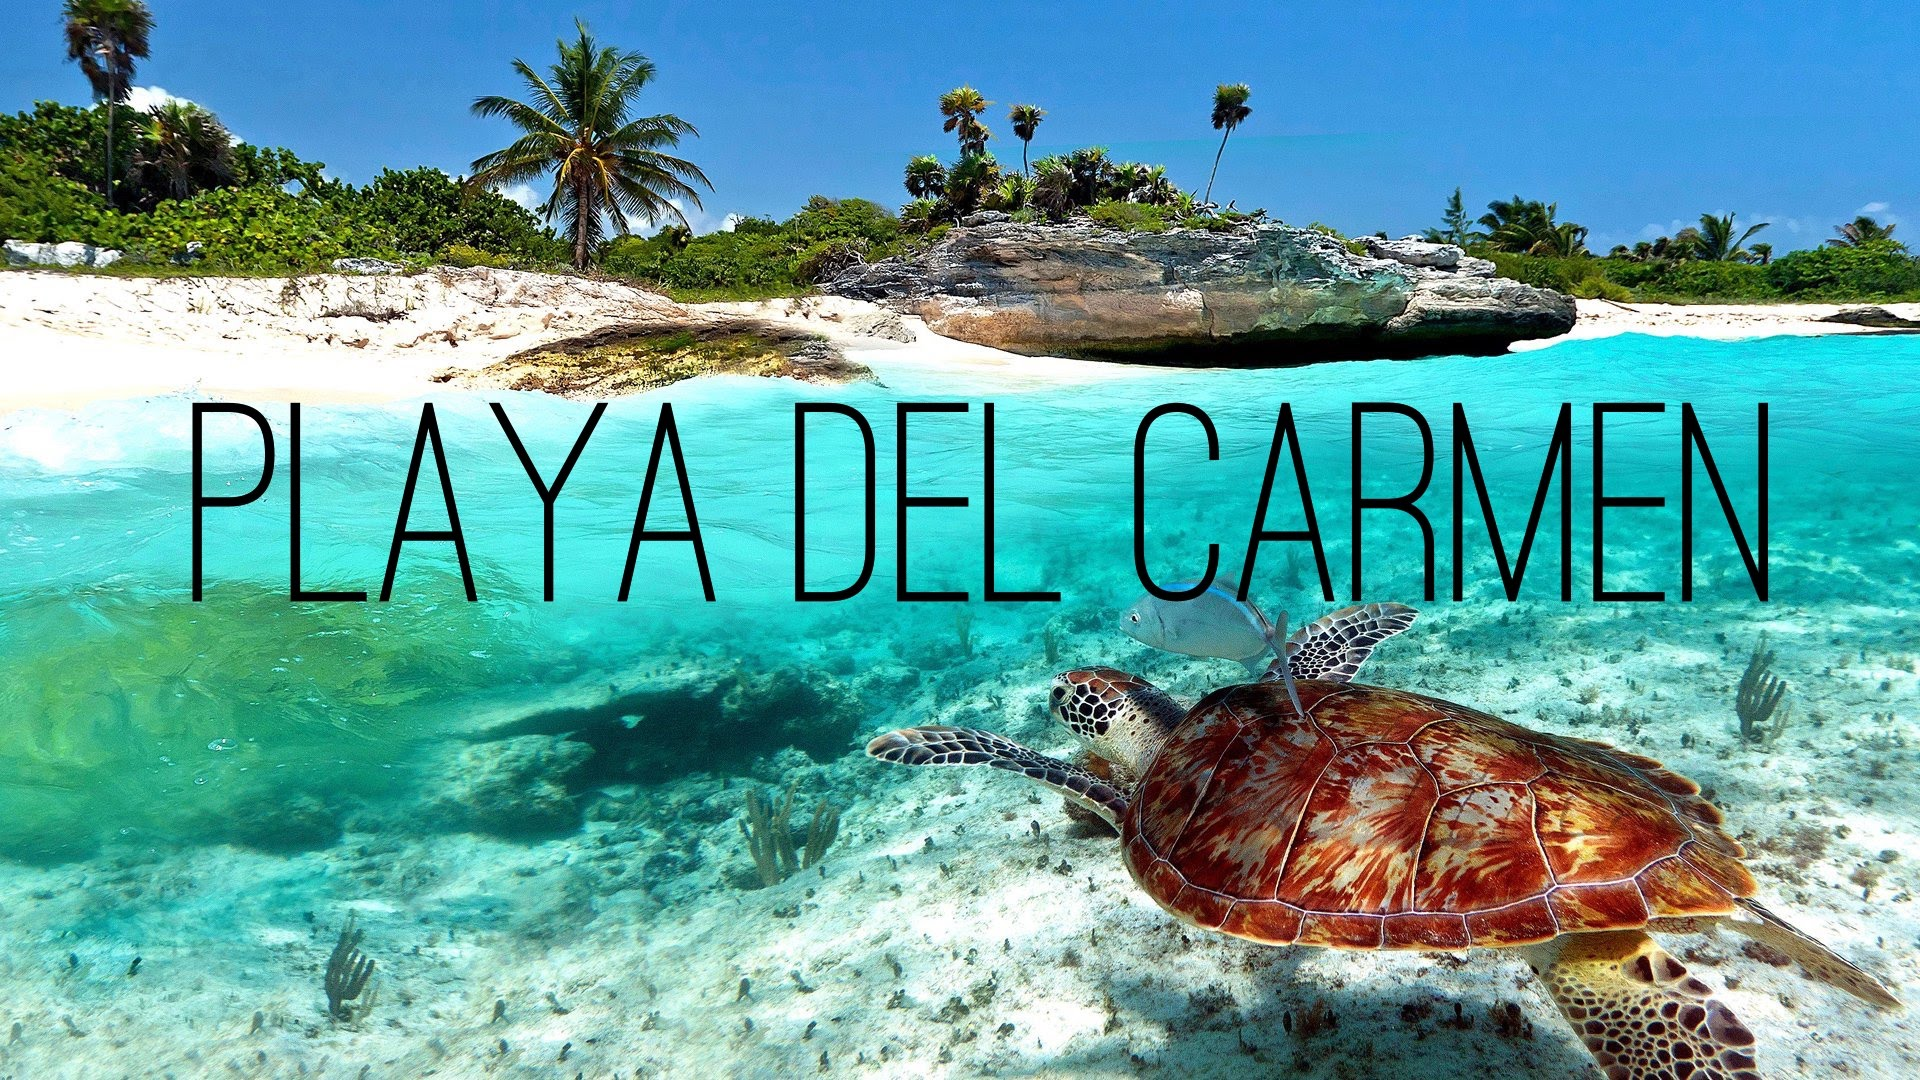 WARNING STILL IN EFFECT FOR CANADIANS HEADING TO PLAYA DEL CARMEN